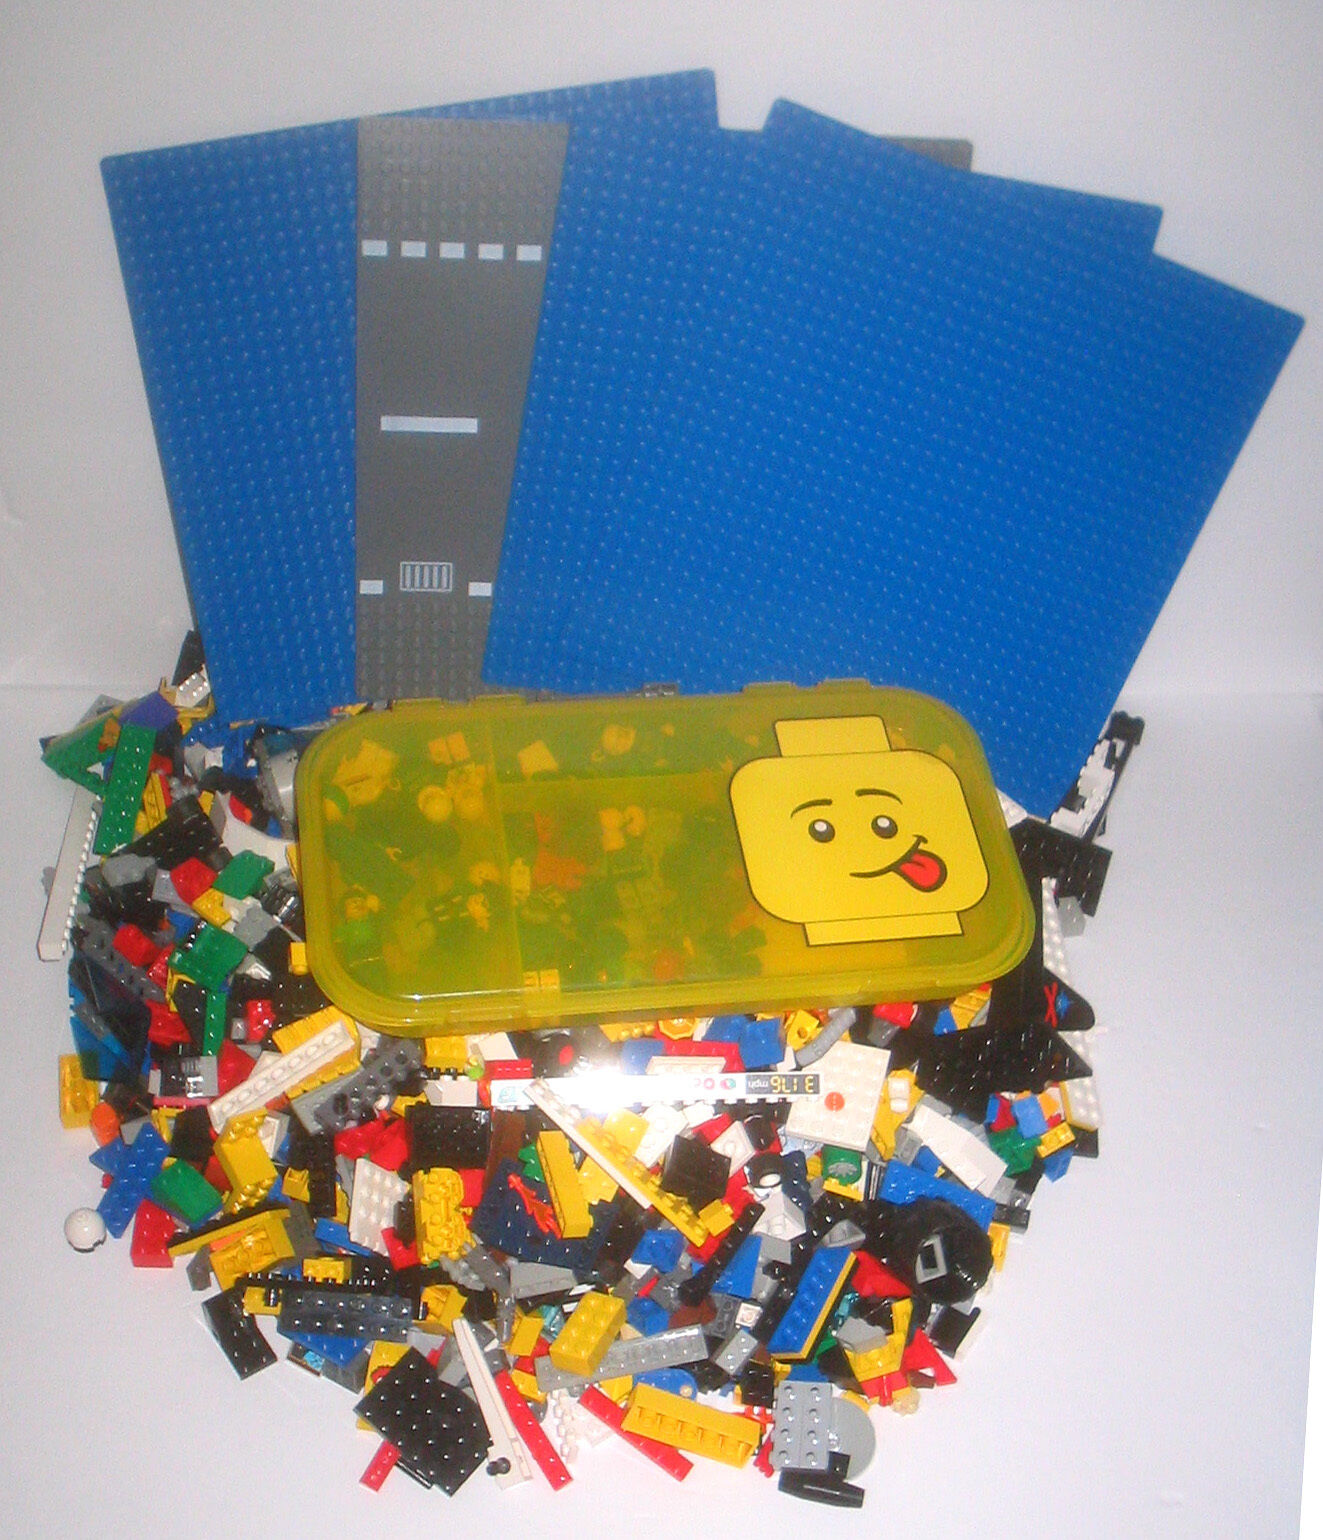 7 Pounds Mixed LEGO Building Pieces Ages 5+